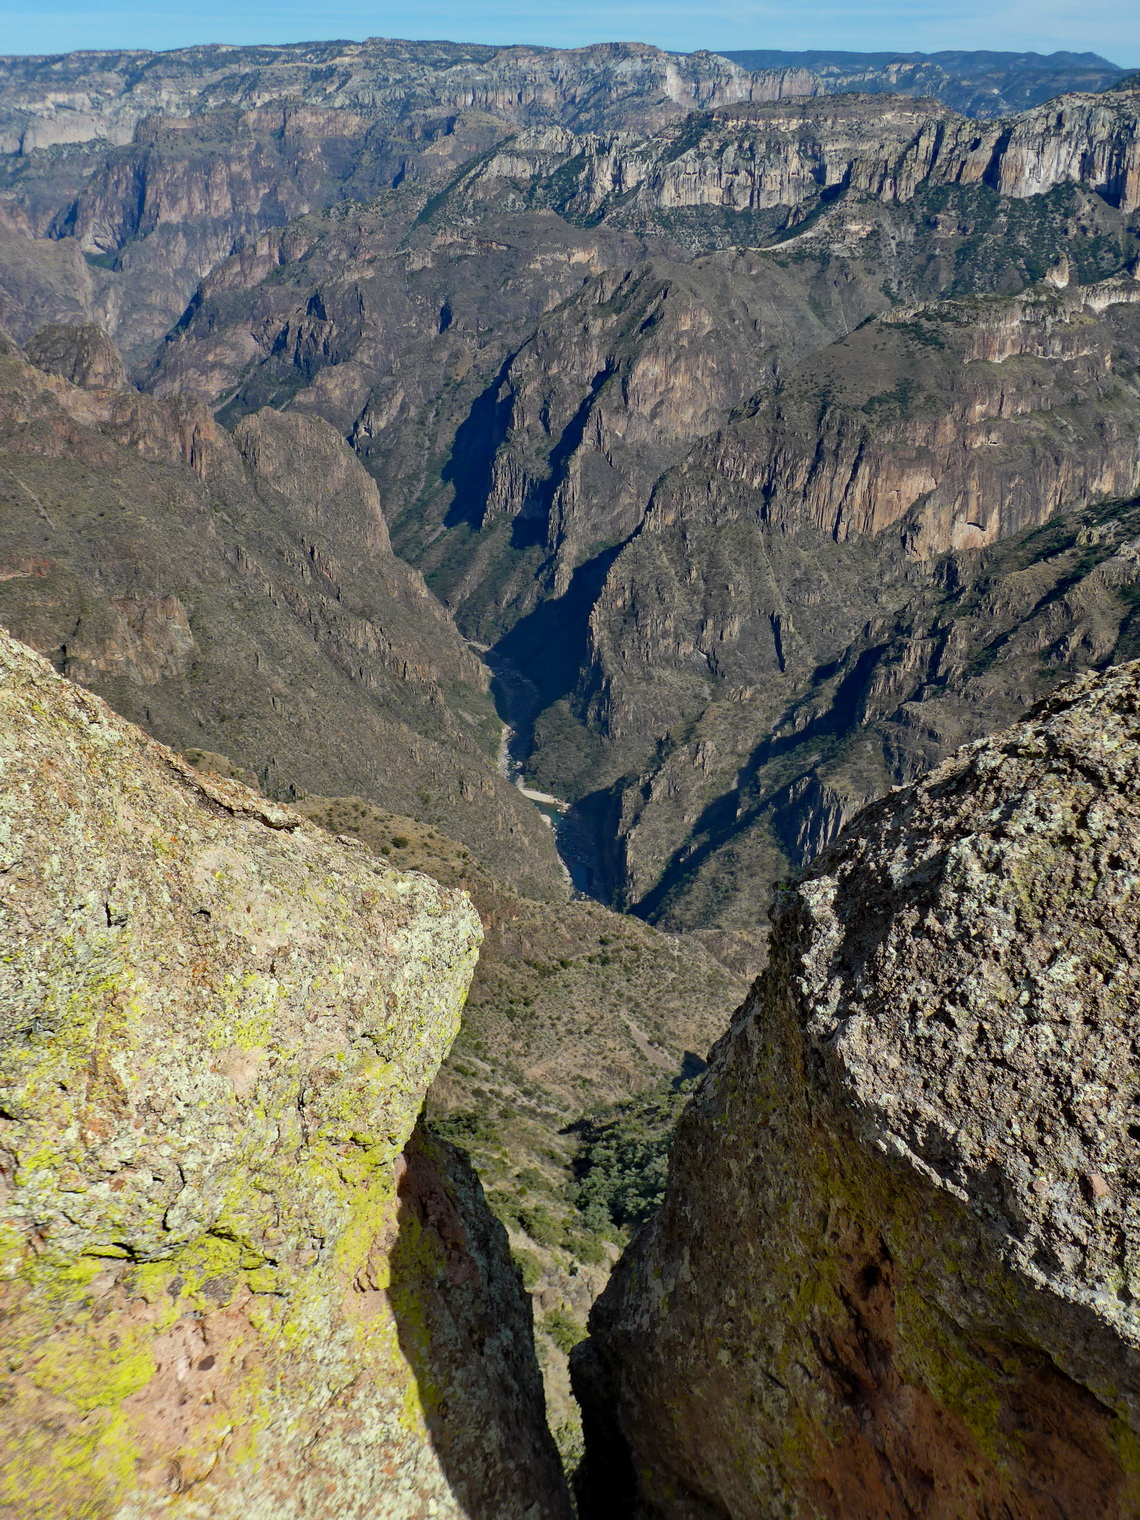 The bottom of the Copper Canyon